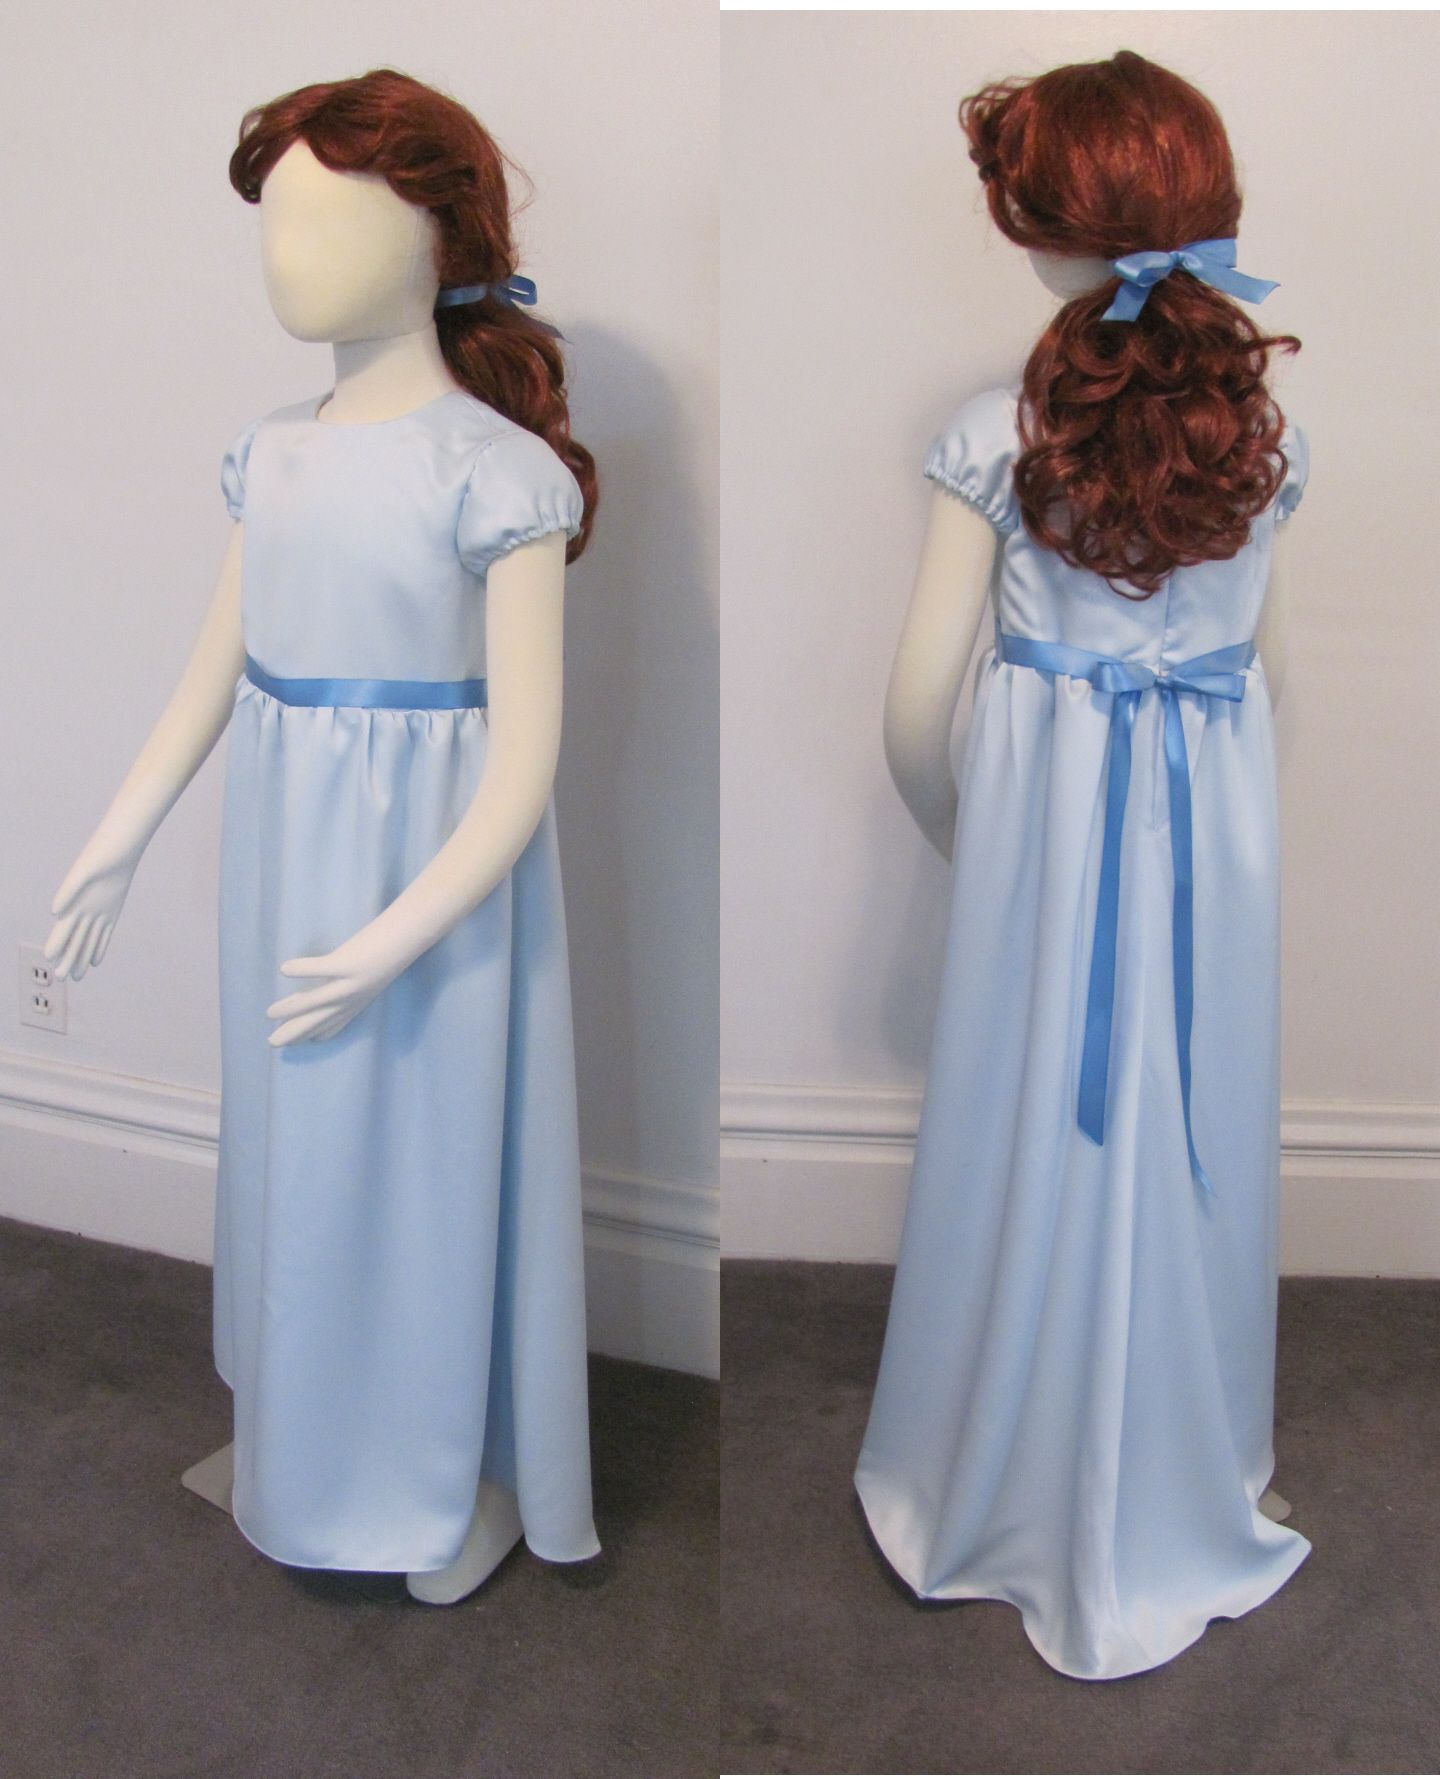 da35ff38a9 Wendy Darling costume for girls from Peter Pan